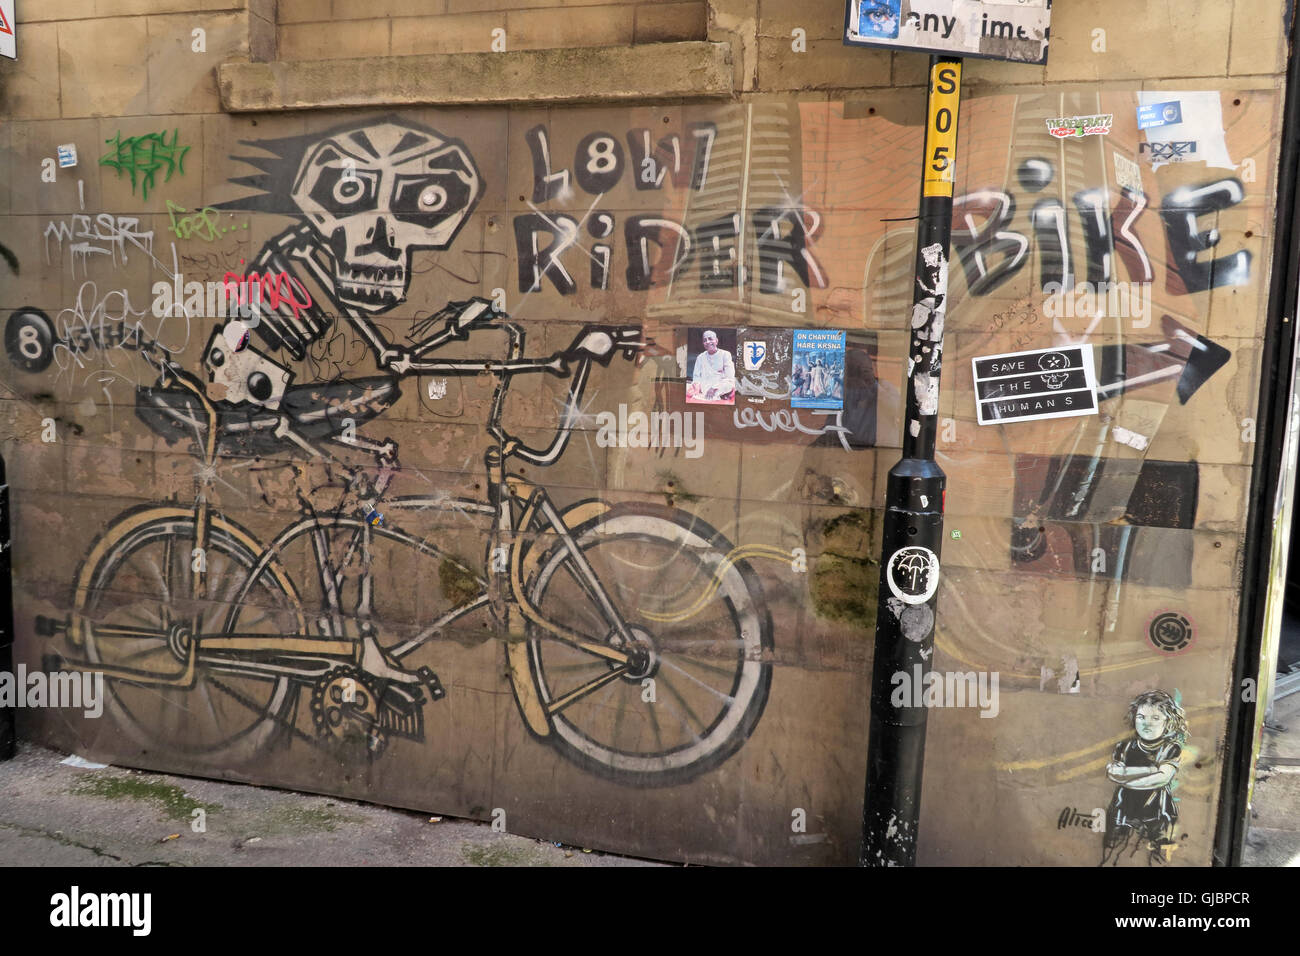 NQ Street art & stencils, Northern Quarter, Manchester, North West England, UK - Stock Image